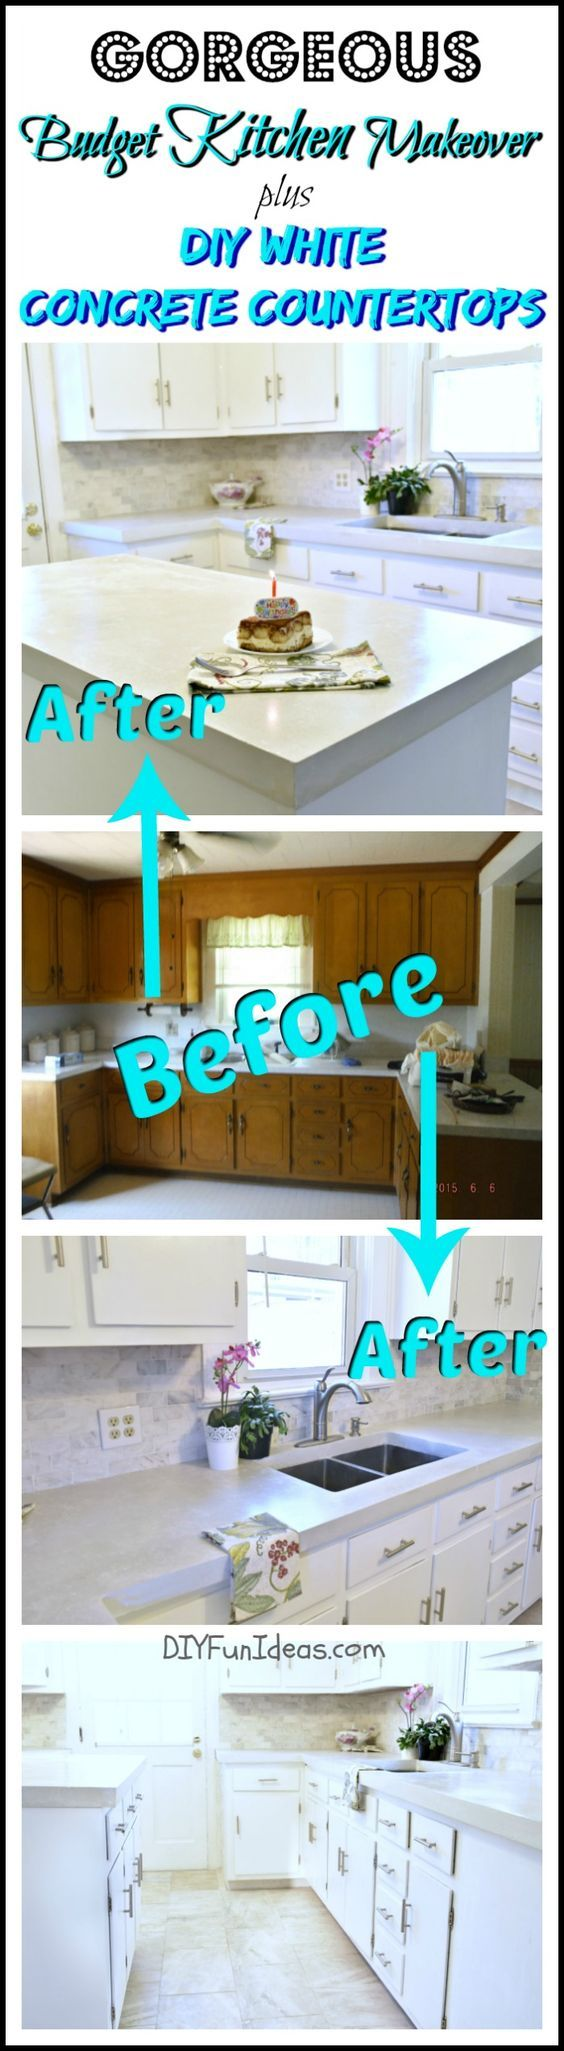 Transform your old kitchen. It's easy! Learn here how the cabinets were refinished for a beautiful high-end look on a low-end budget. Plus how to get beautiful DIY pour-in-place white concrete countertops and save thousands!